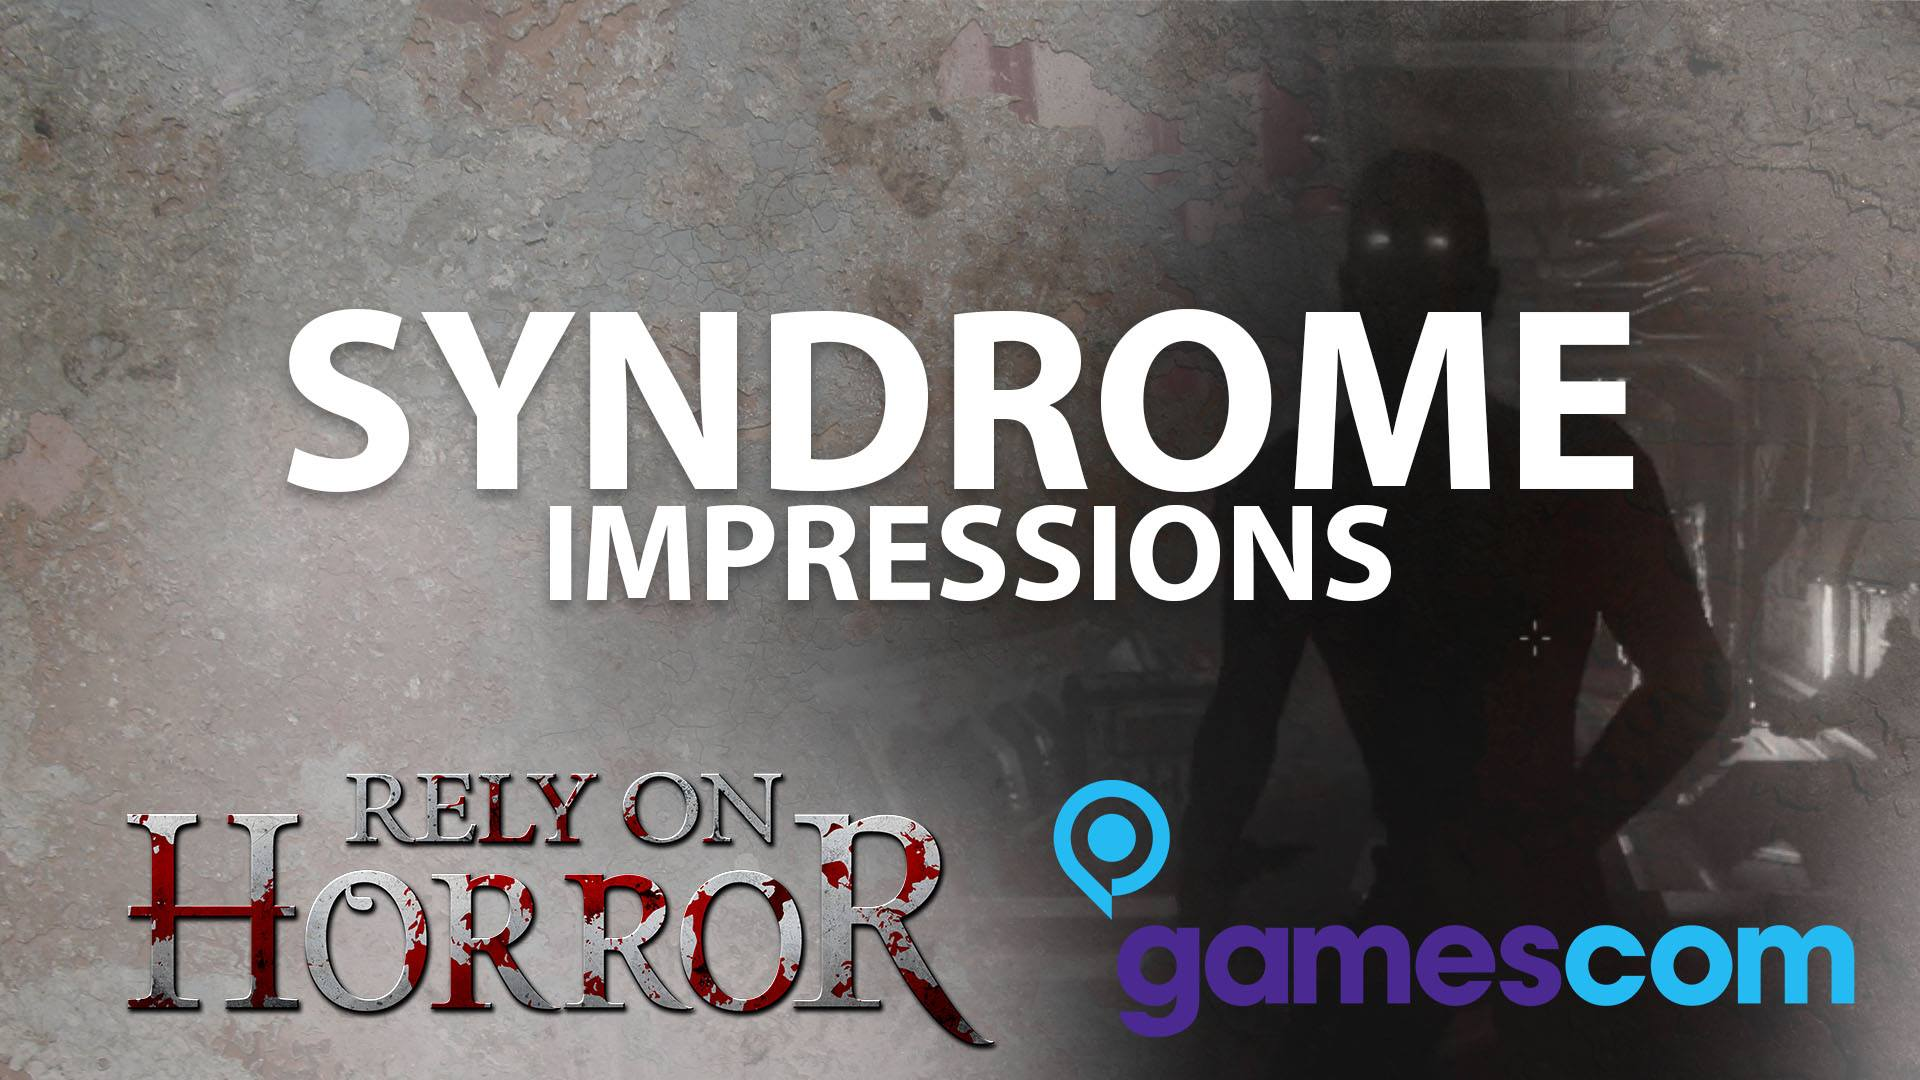 Gamescom 2016: Syndrome Impressions and gameplay